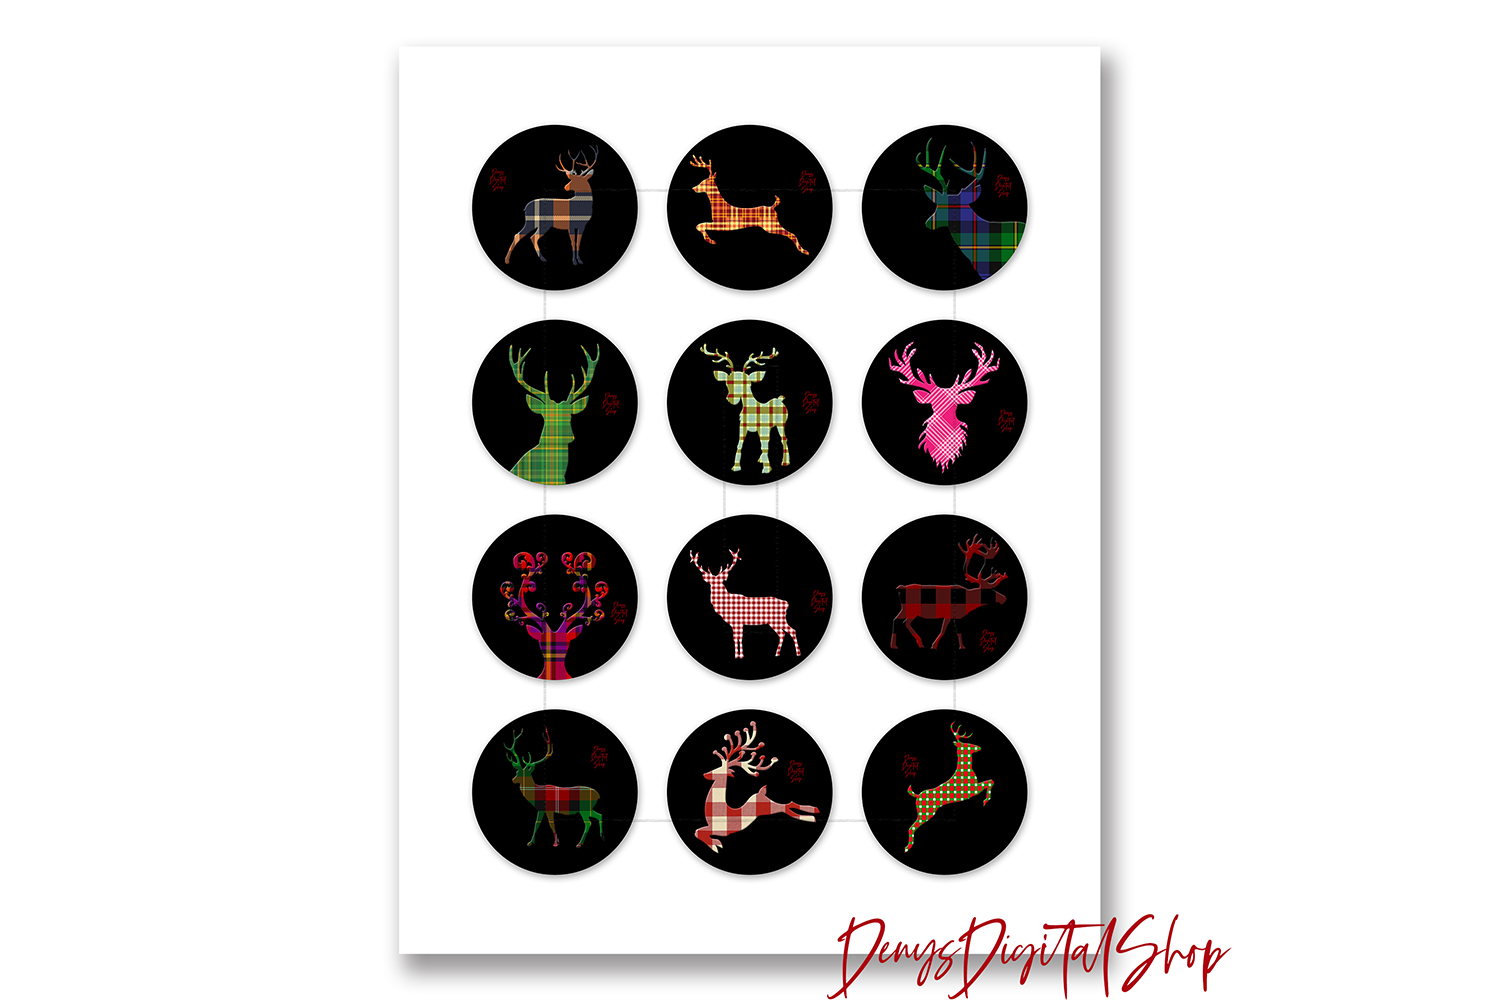 Christmas Reindeer,Buffalo Reindeer,Reindeer Digital Collage example image 2